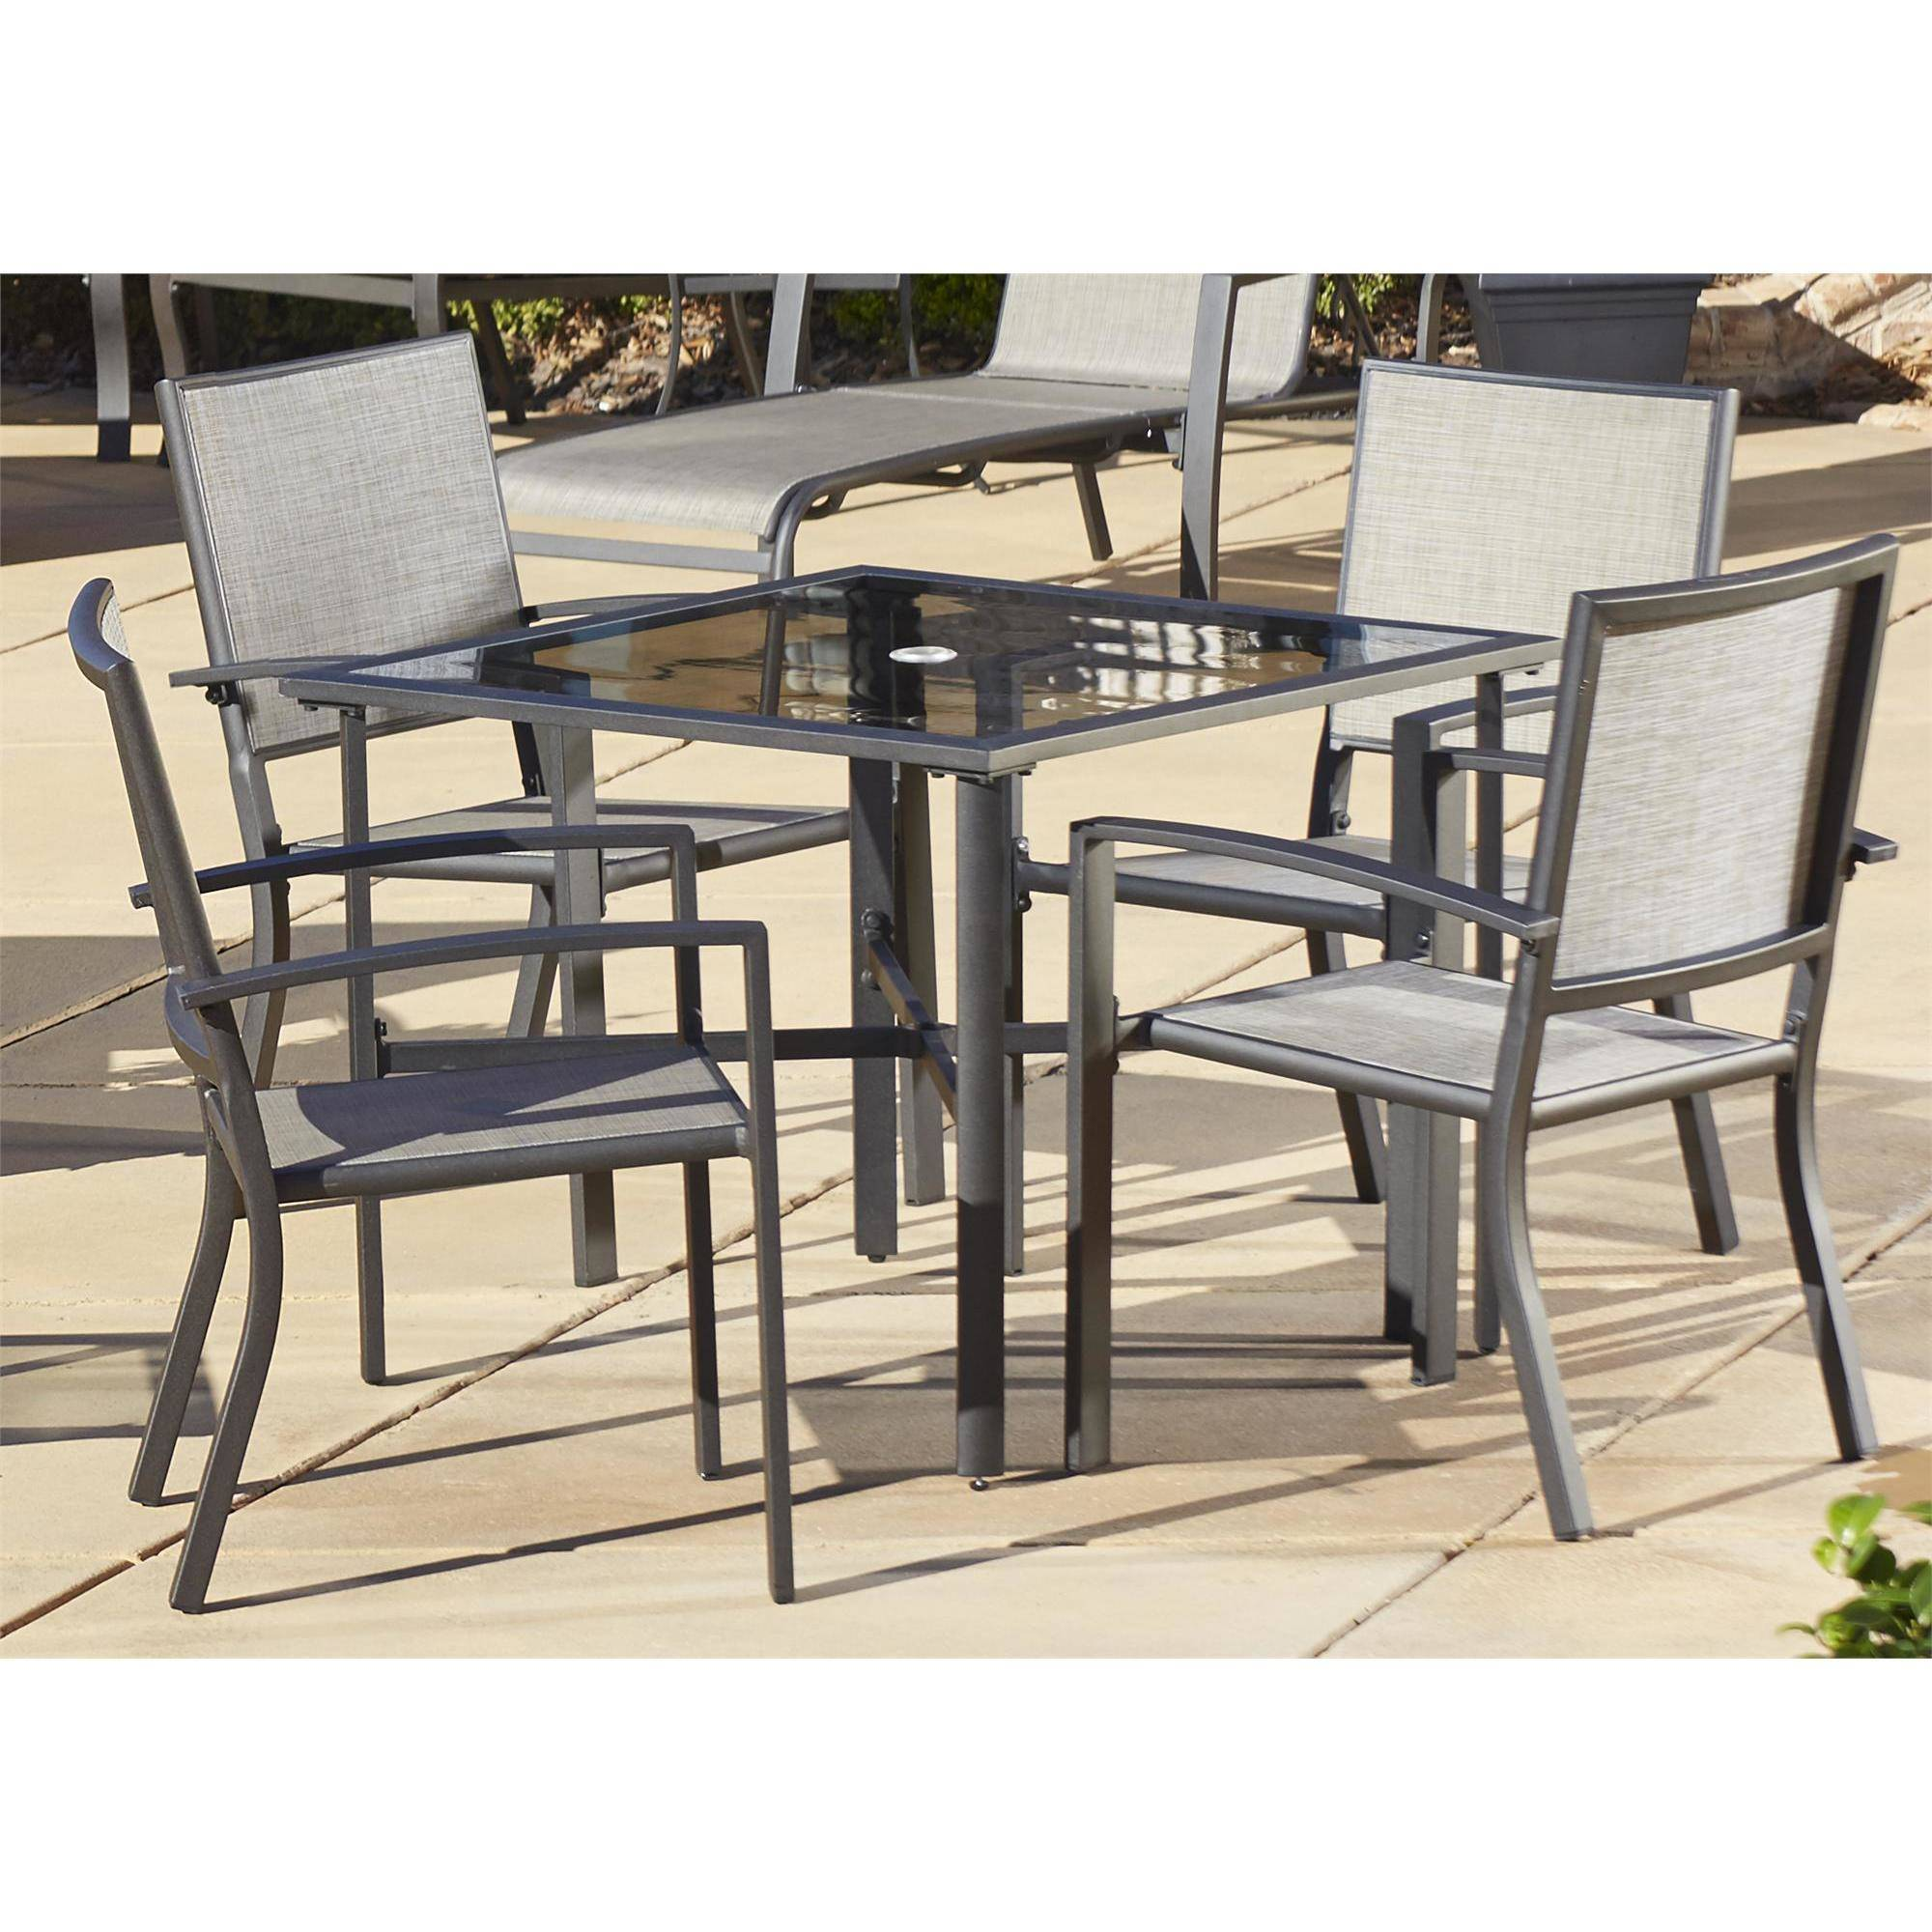 See More Hot 100 Patio Dining Sets